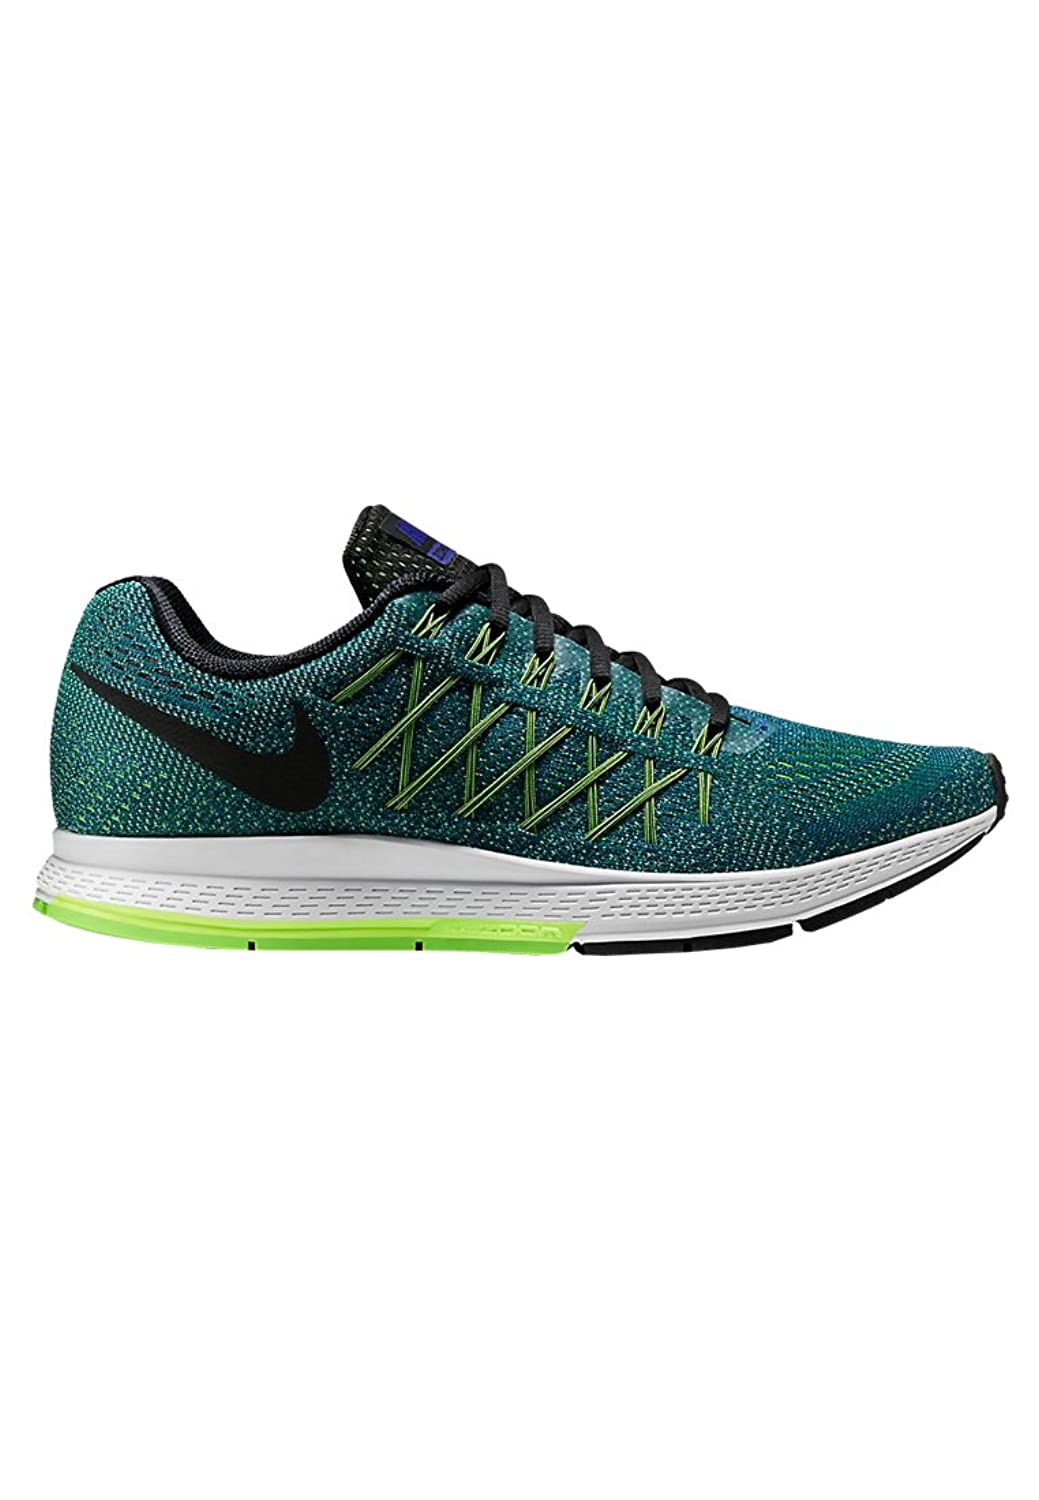 Amazon.com | nike air zoom pegasus 32 PHOTOSYNTH womens running trainers  724381 sneakers shoes (UK 7 us 9.5 EU 41, dark obsidian summit white gum  light ...